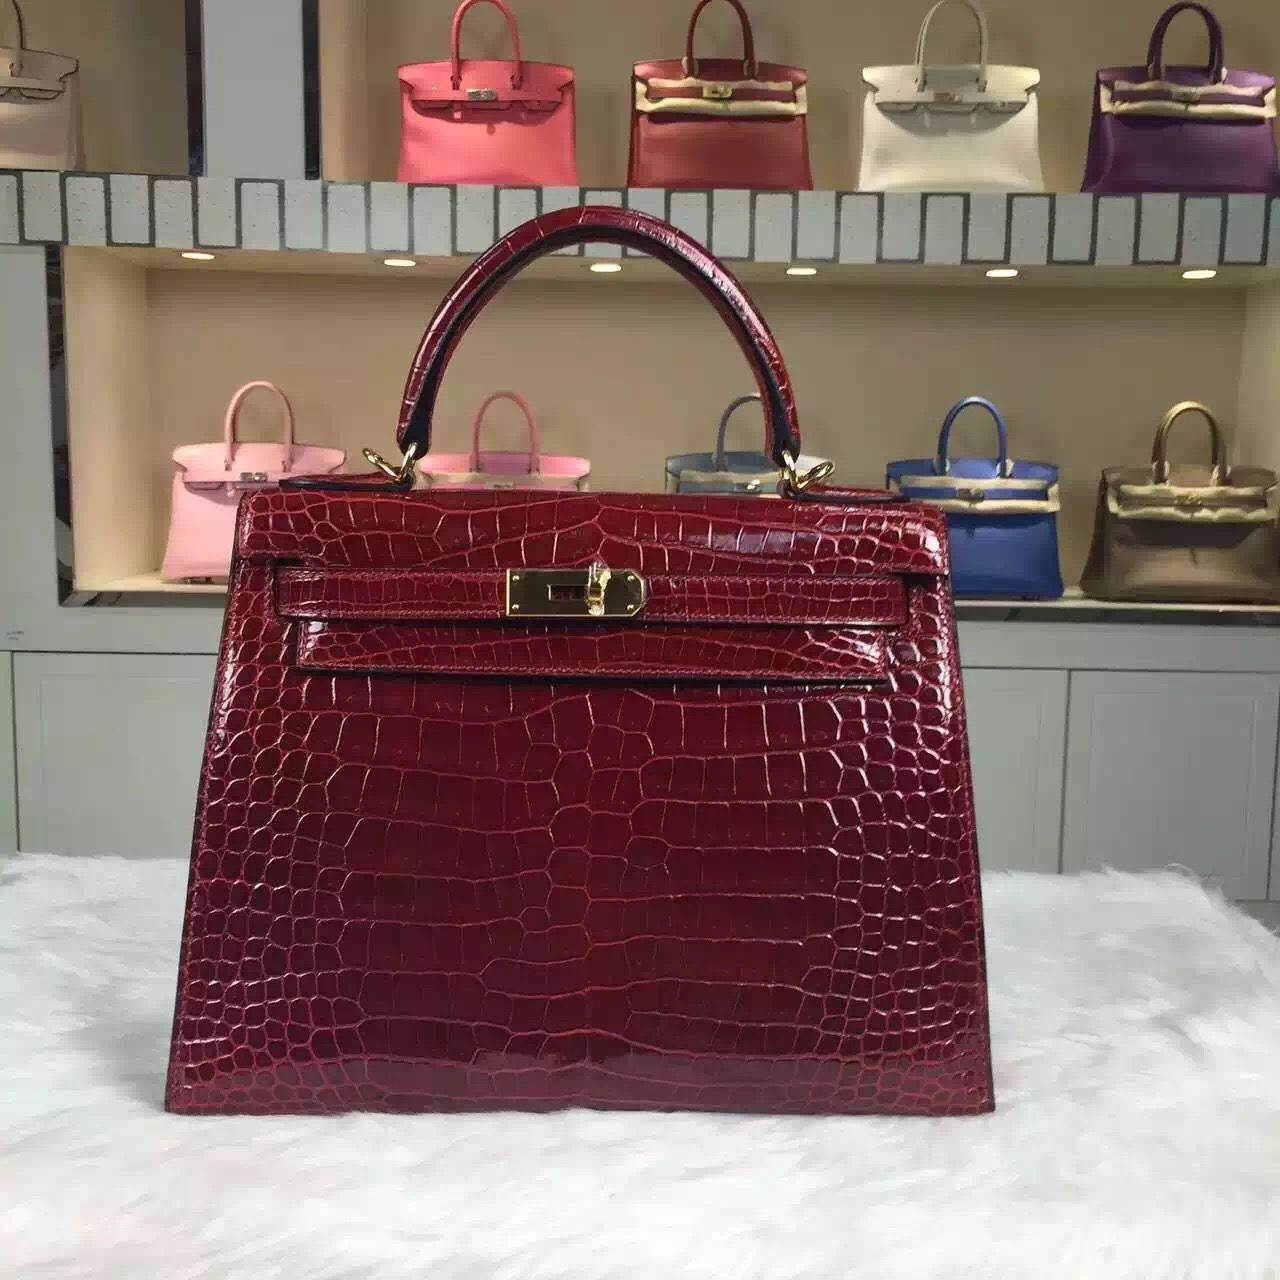 5574f2e6e203 Brand  Hermes  Style  Kelly Bag 28CM   Material  Crocodile Shiny  Leather Color  New Wine Red  Hardware  gold silver  Accessories  Padlock and  keys